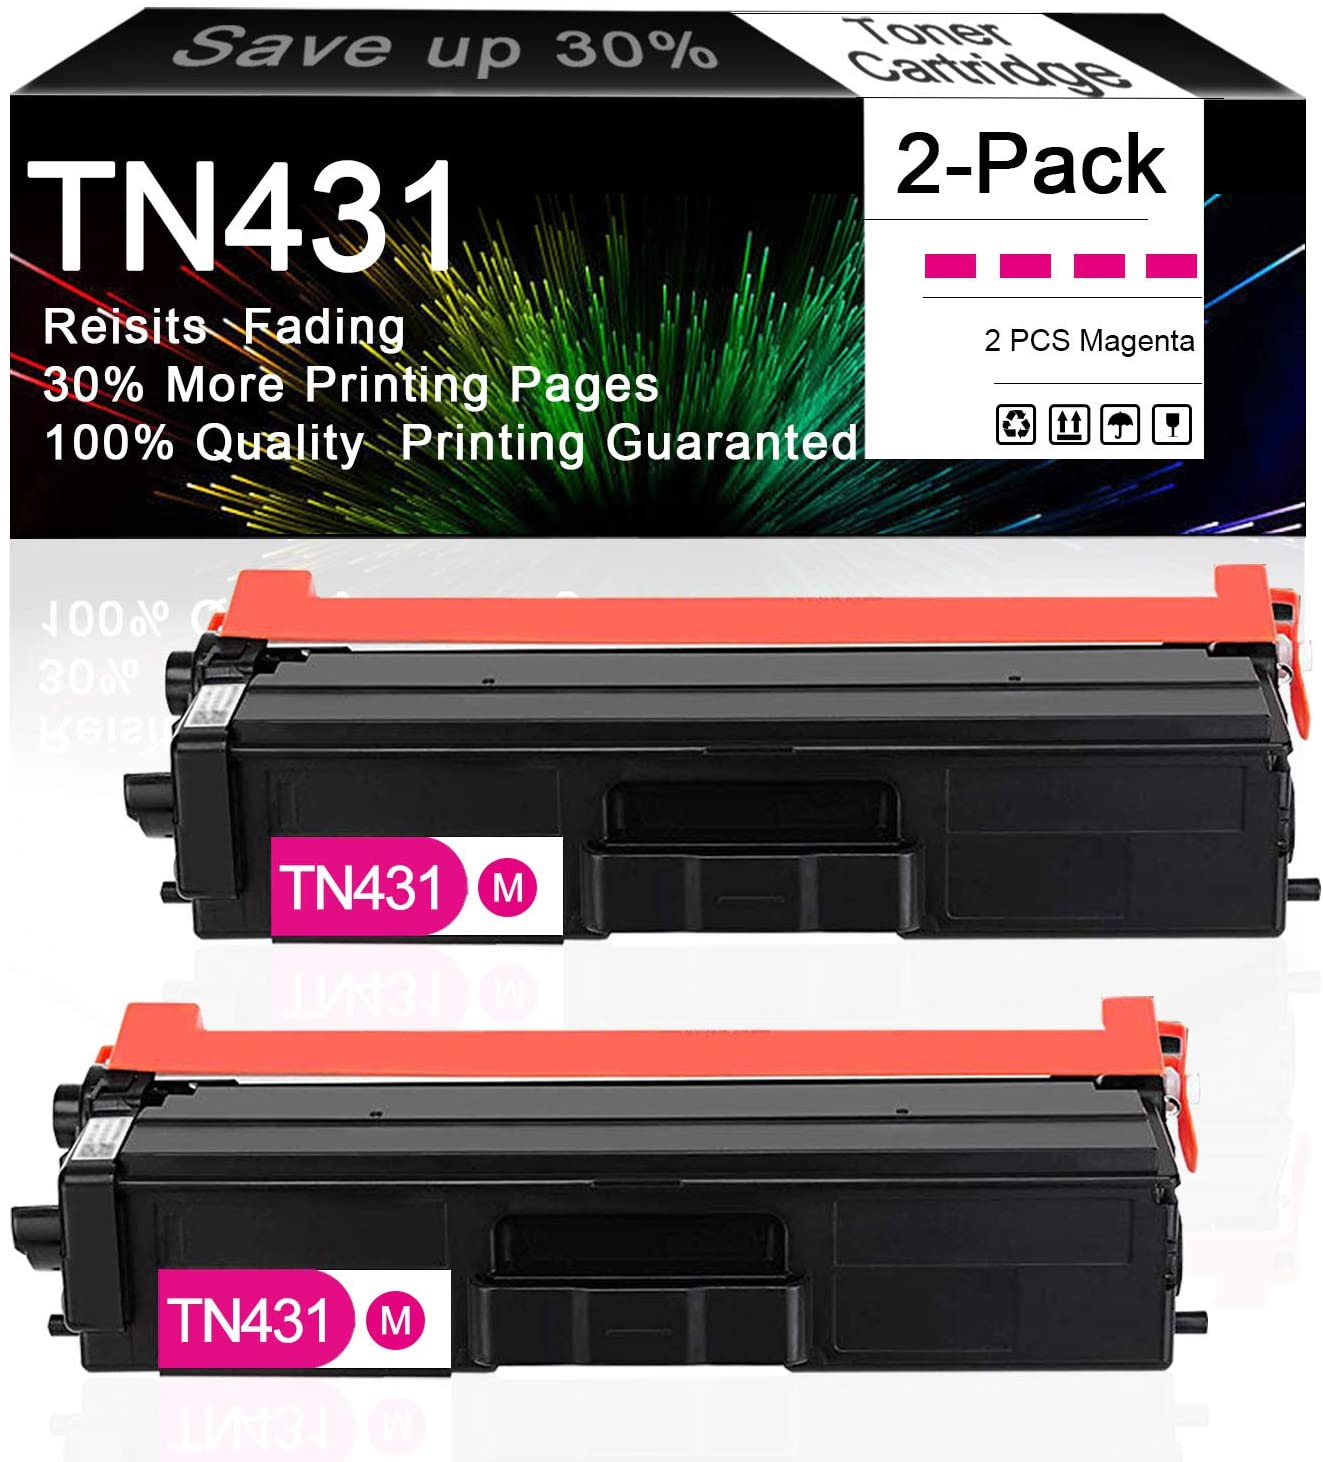 Compatible 2-Pack (Magenta) TN431 TN431M TN-431 Toner Cartridge Replacement for Brother HL-L8260CDW HL-L9310CDW MFC-L8610CDW MFC-L8690CDW DCP-L8410CDW Printer, Sold by CuToner.